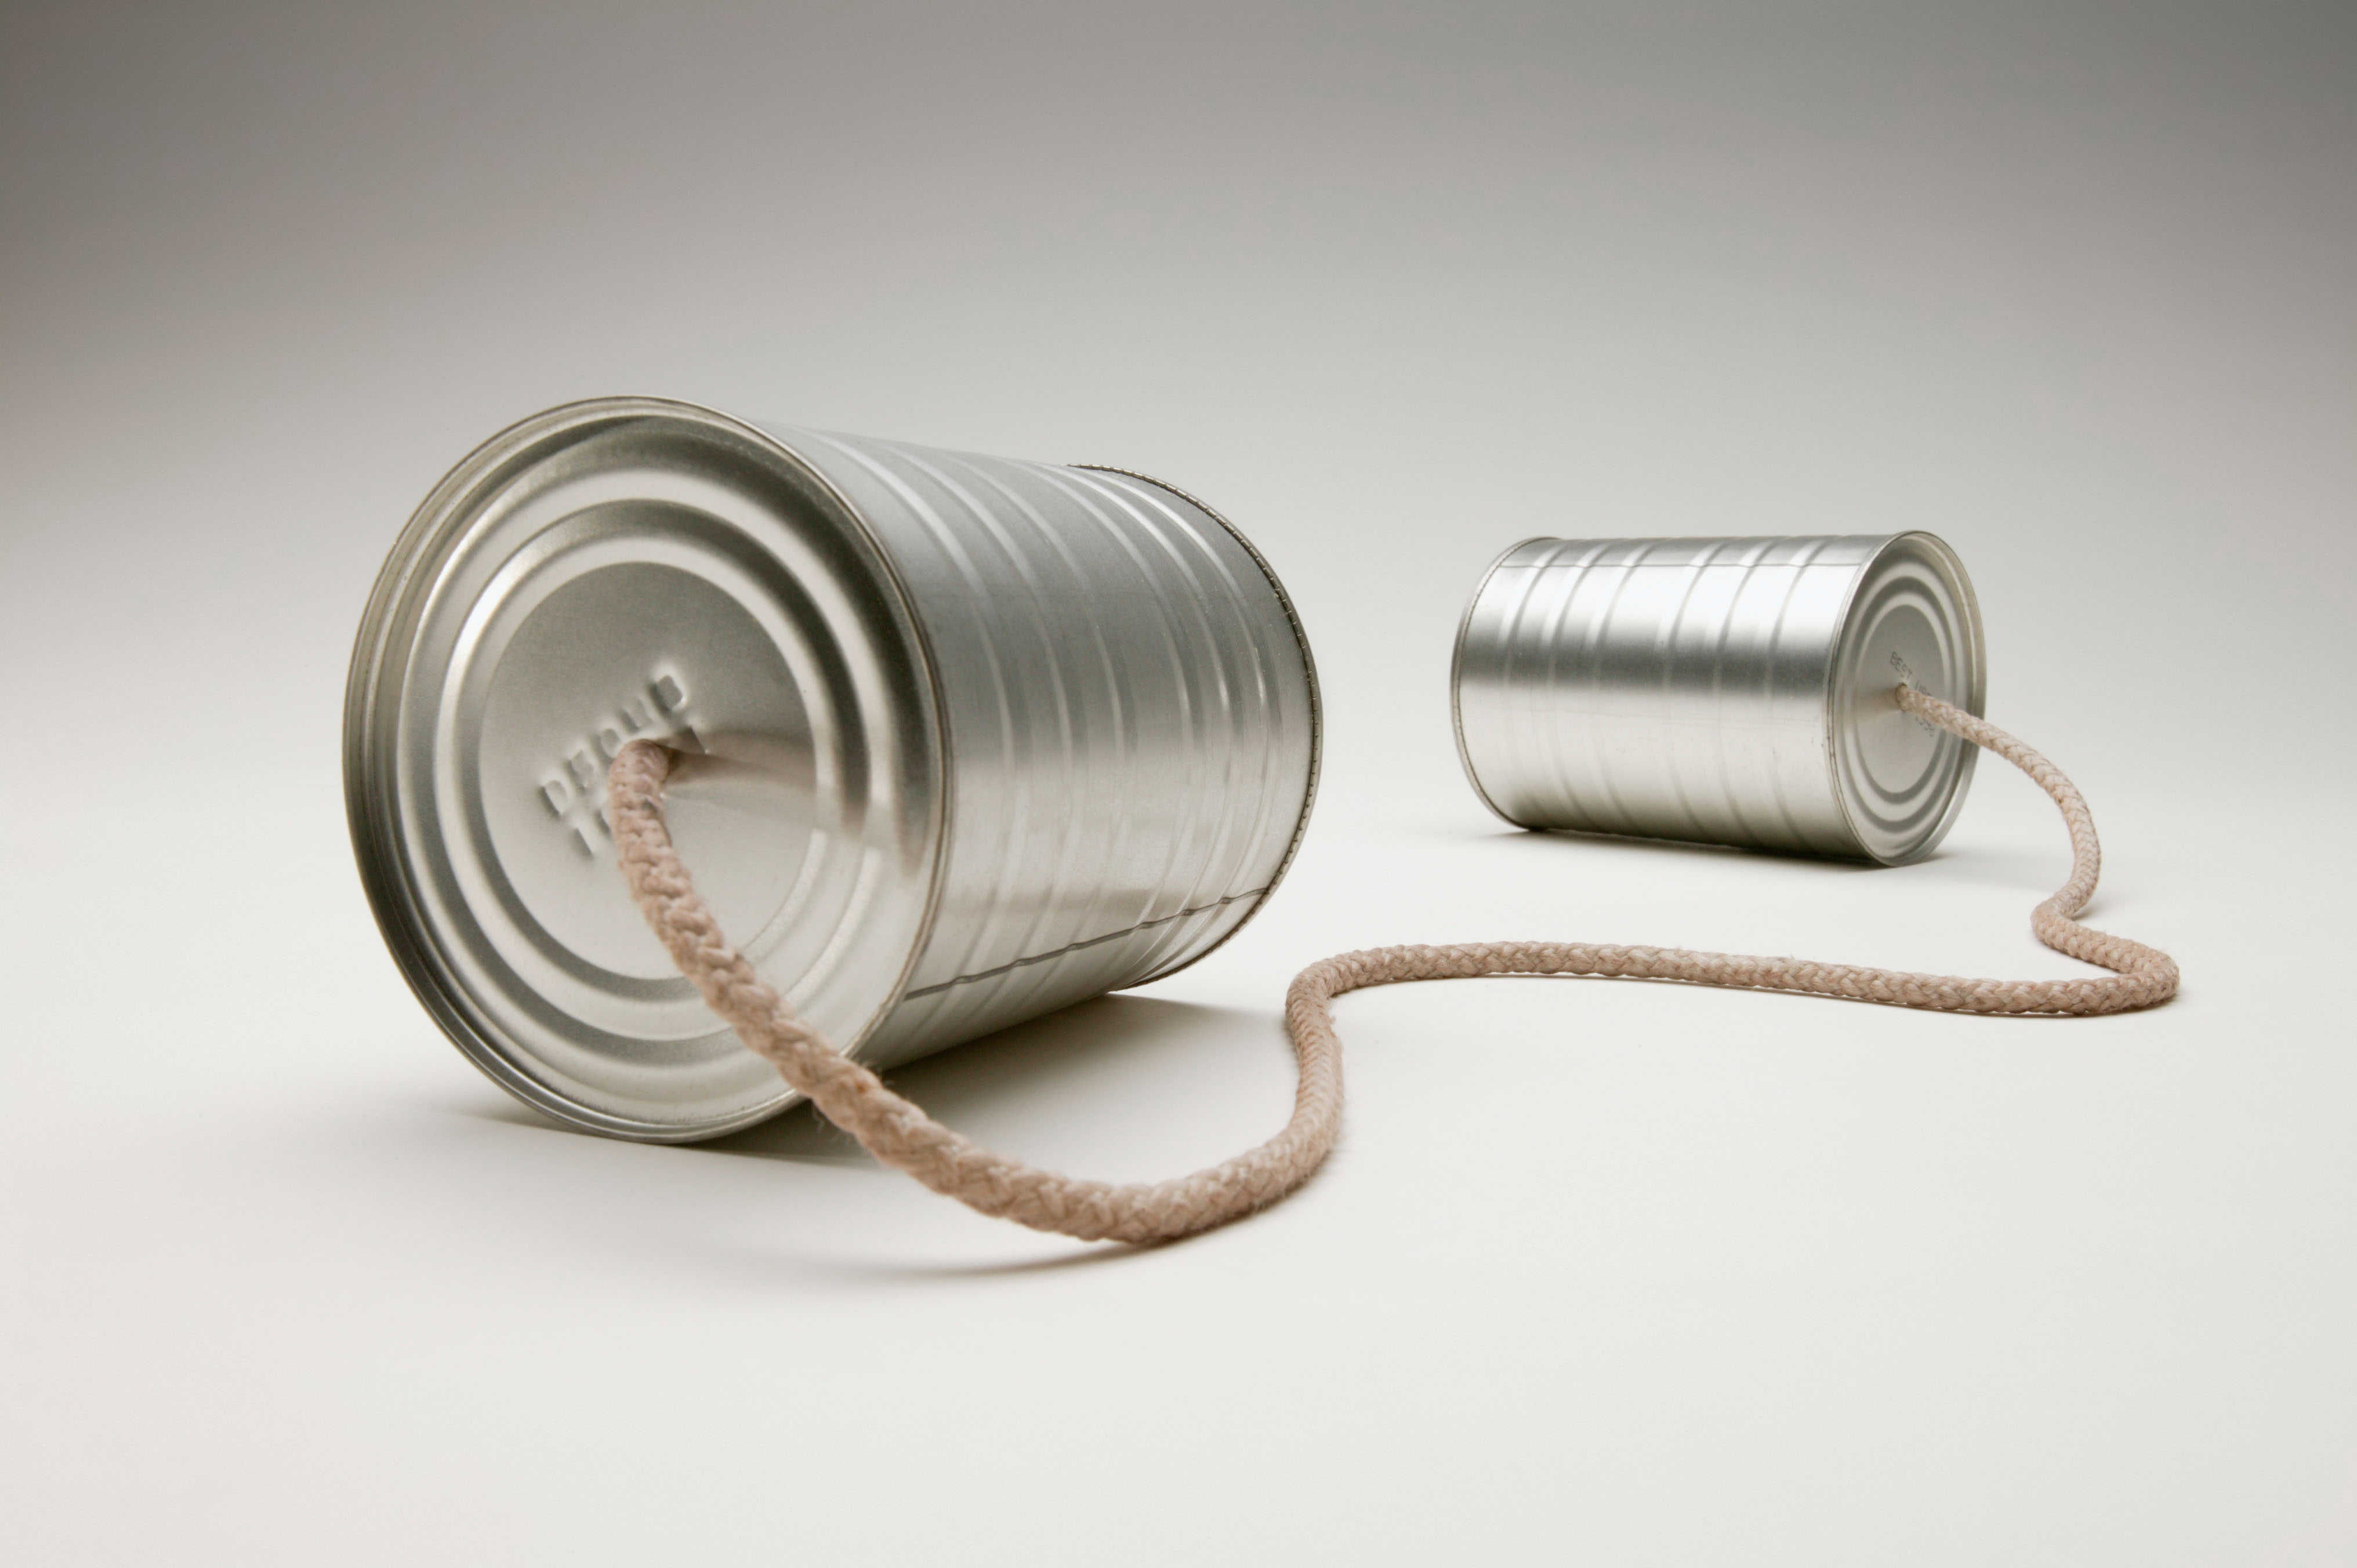 Why Financial Advisers Have a Failure to Communicate